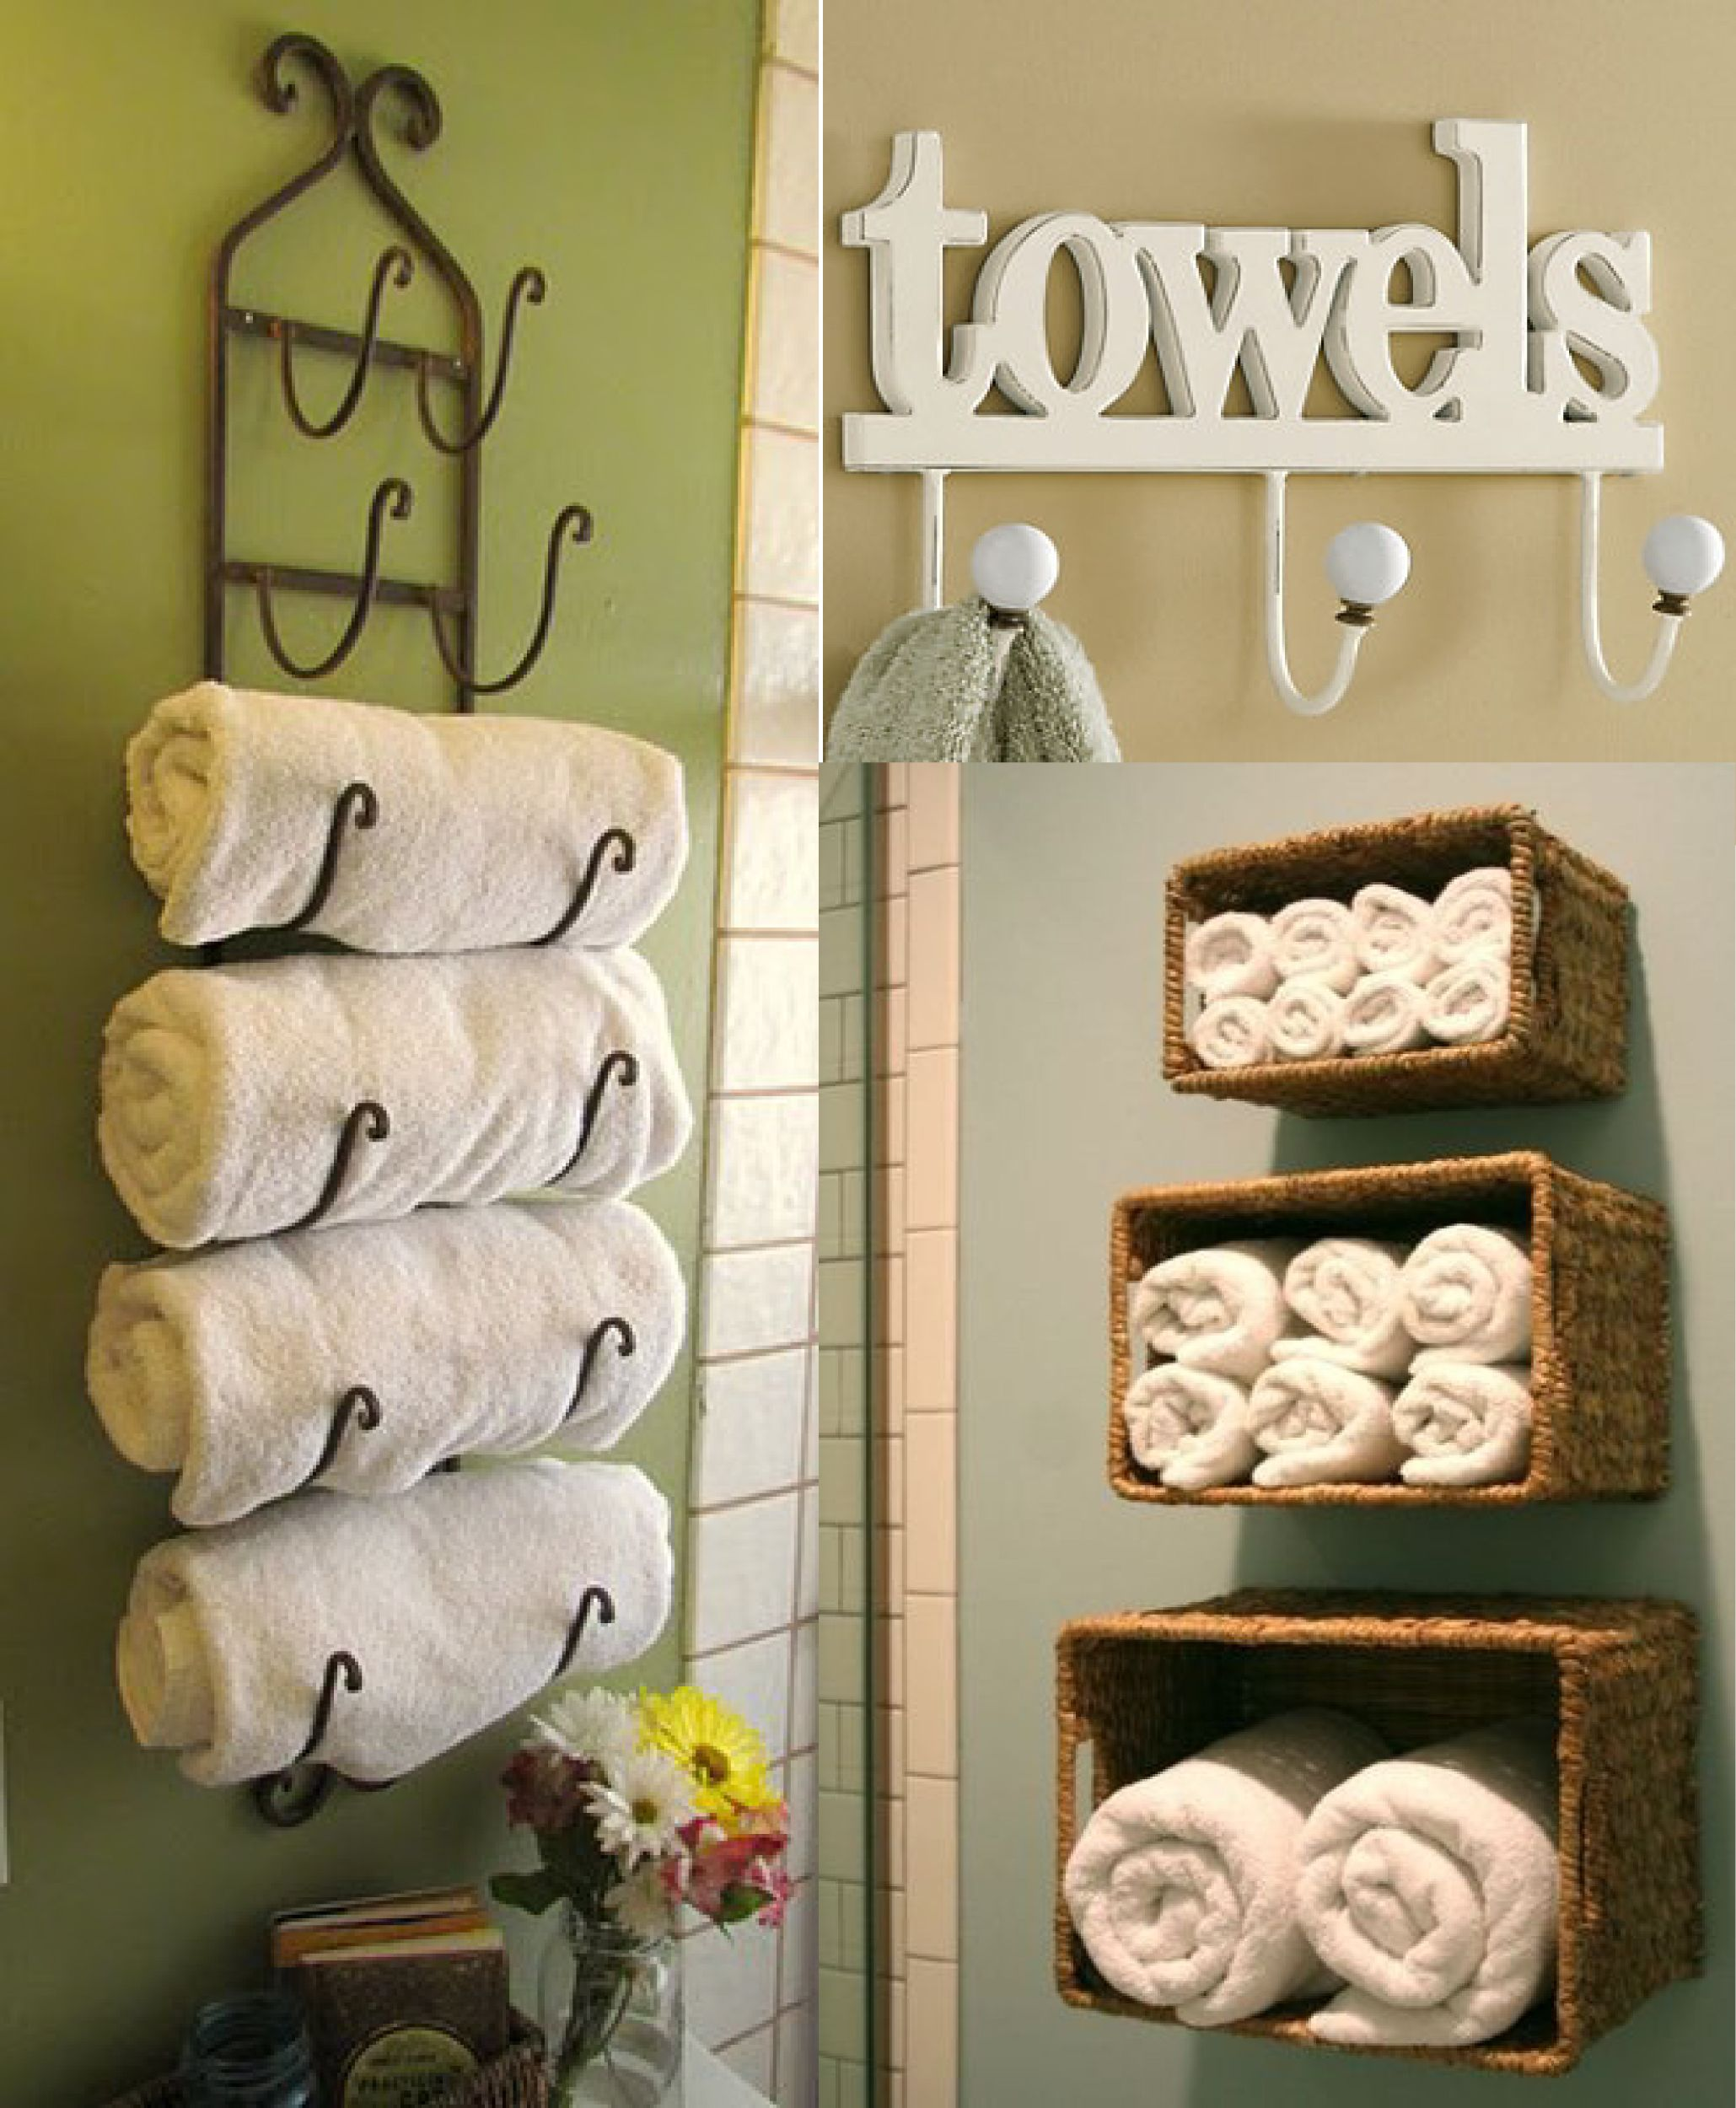 Displaying bathroom towels ideas - Appealing Multi Choice For Vintage And Handmade Towel Rack Ideas With Iron Materials Whether Rattan Basket Towel Storage Ideas For Cool Accesories Bathroom